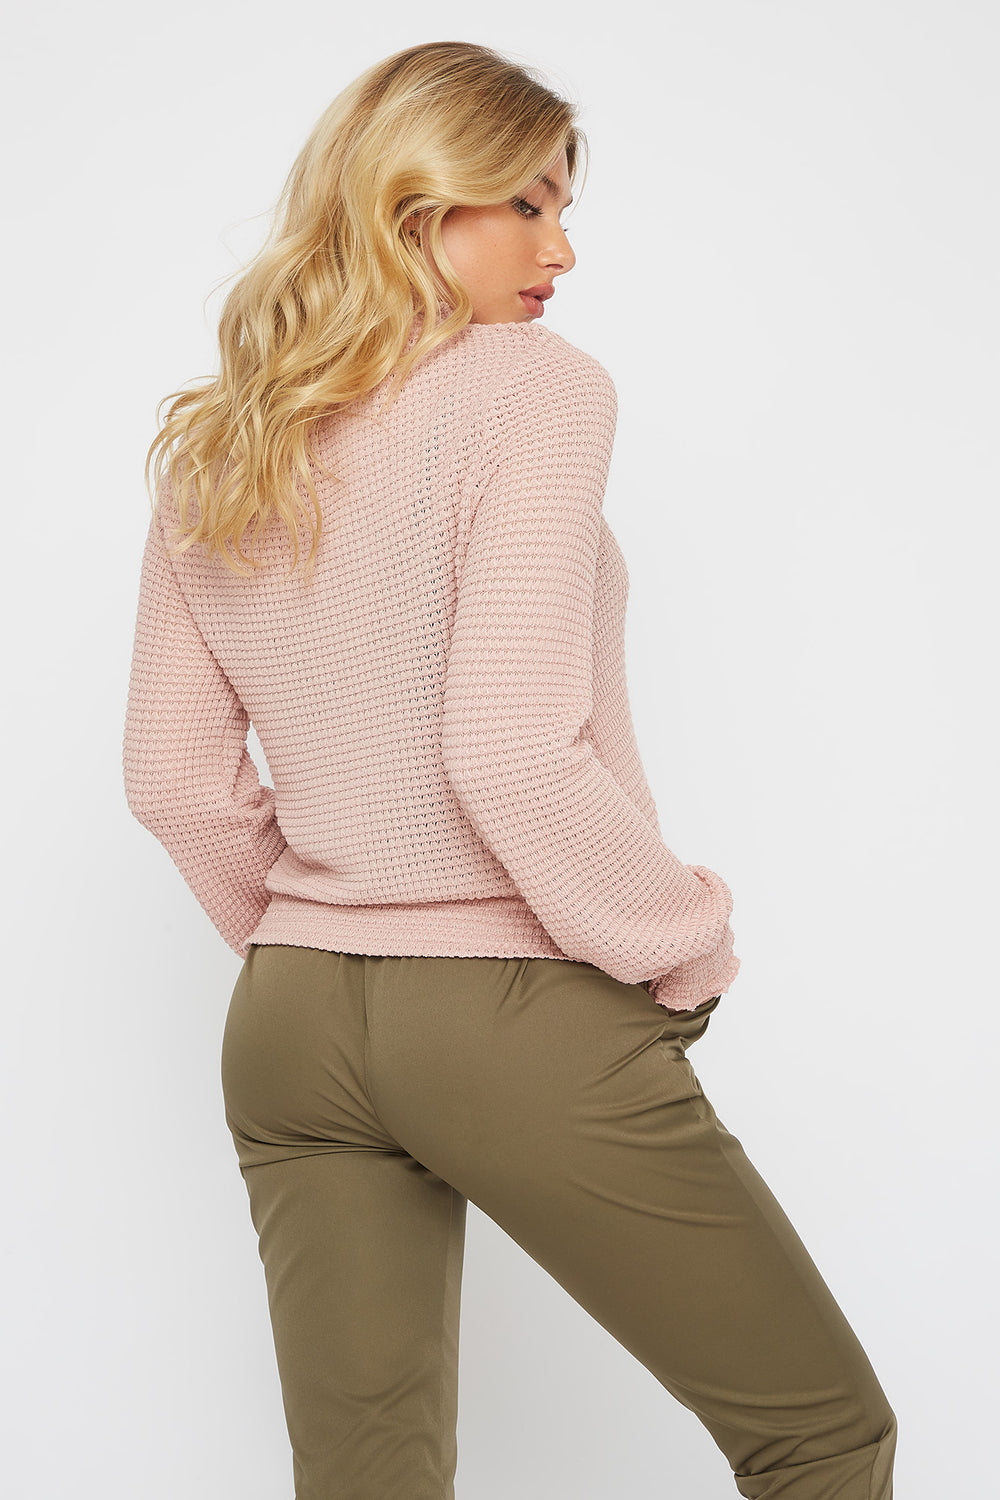 Soft Knit Smocked Turtleneck Long Sleeve Dusty Rose